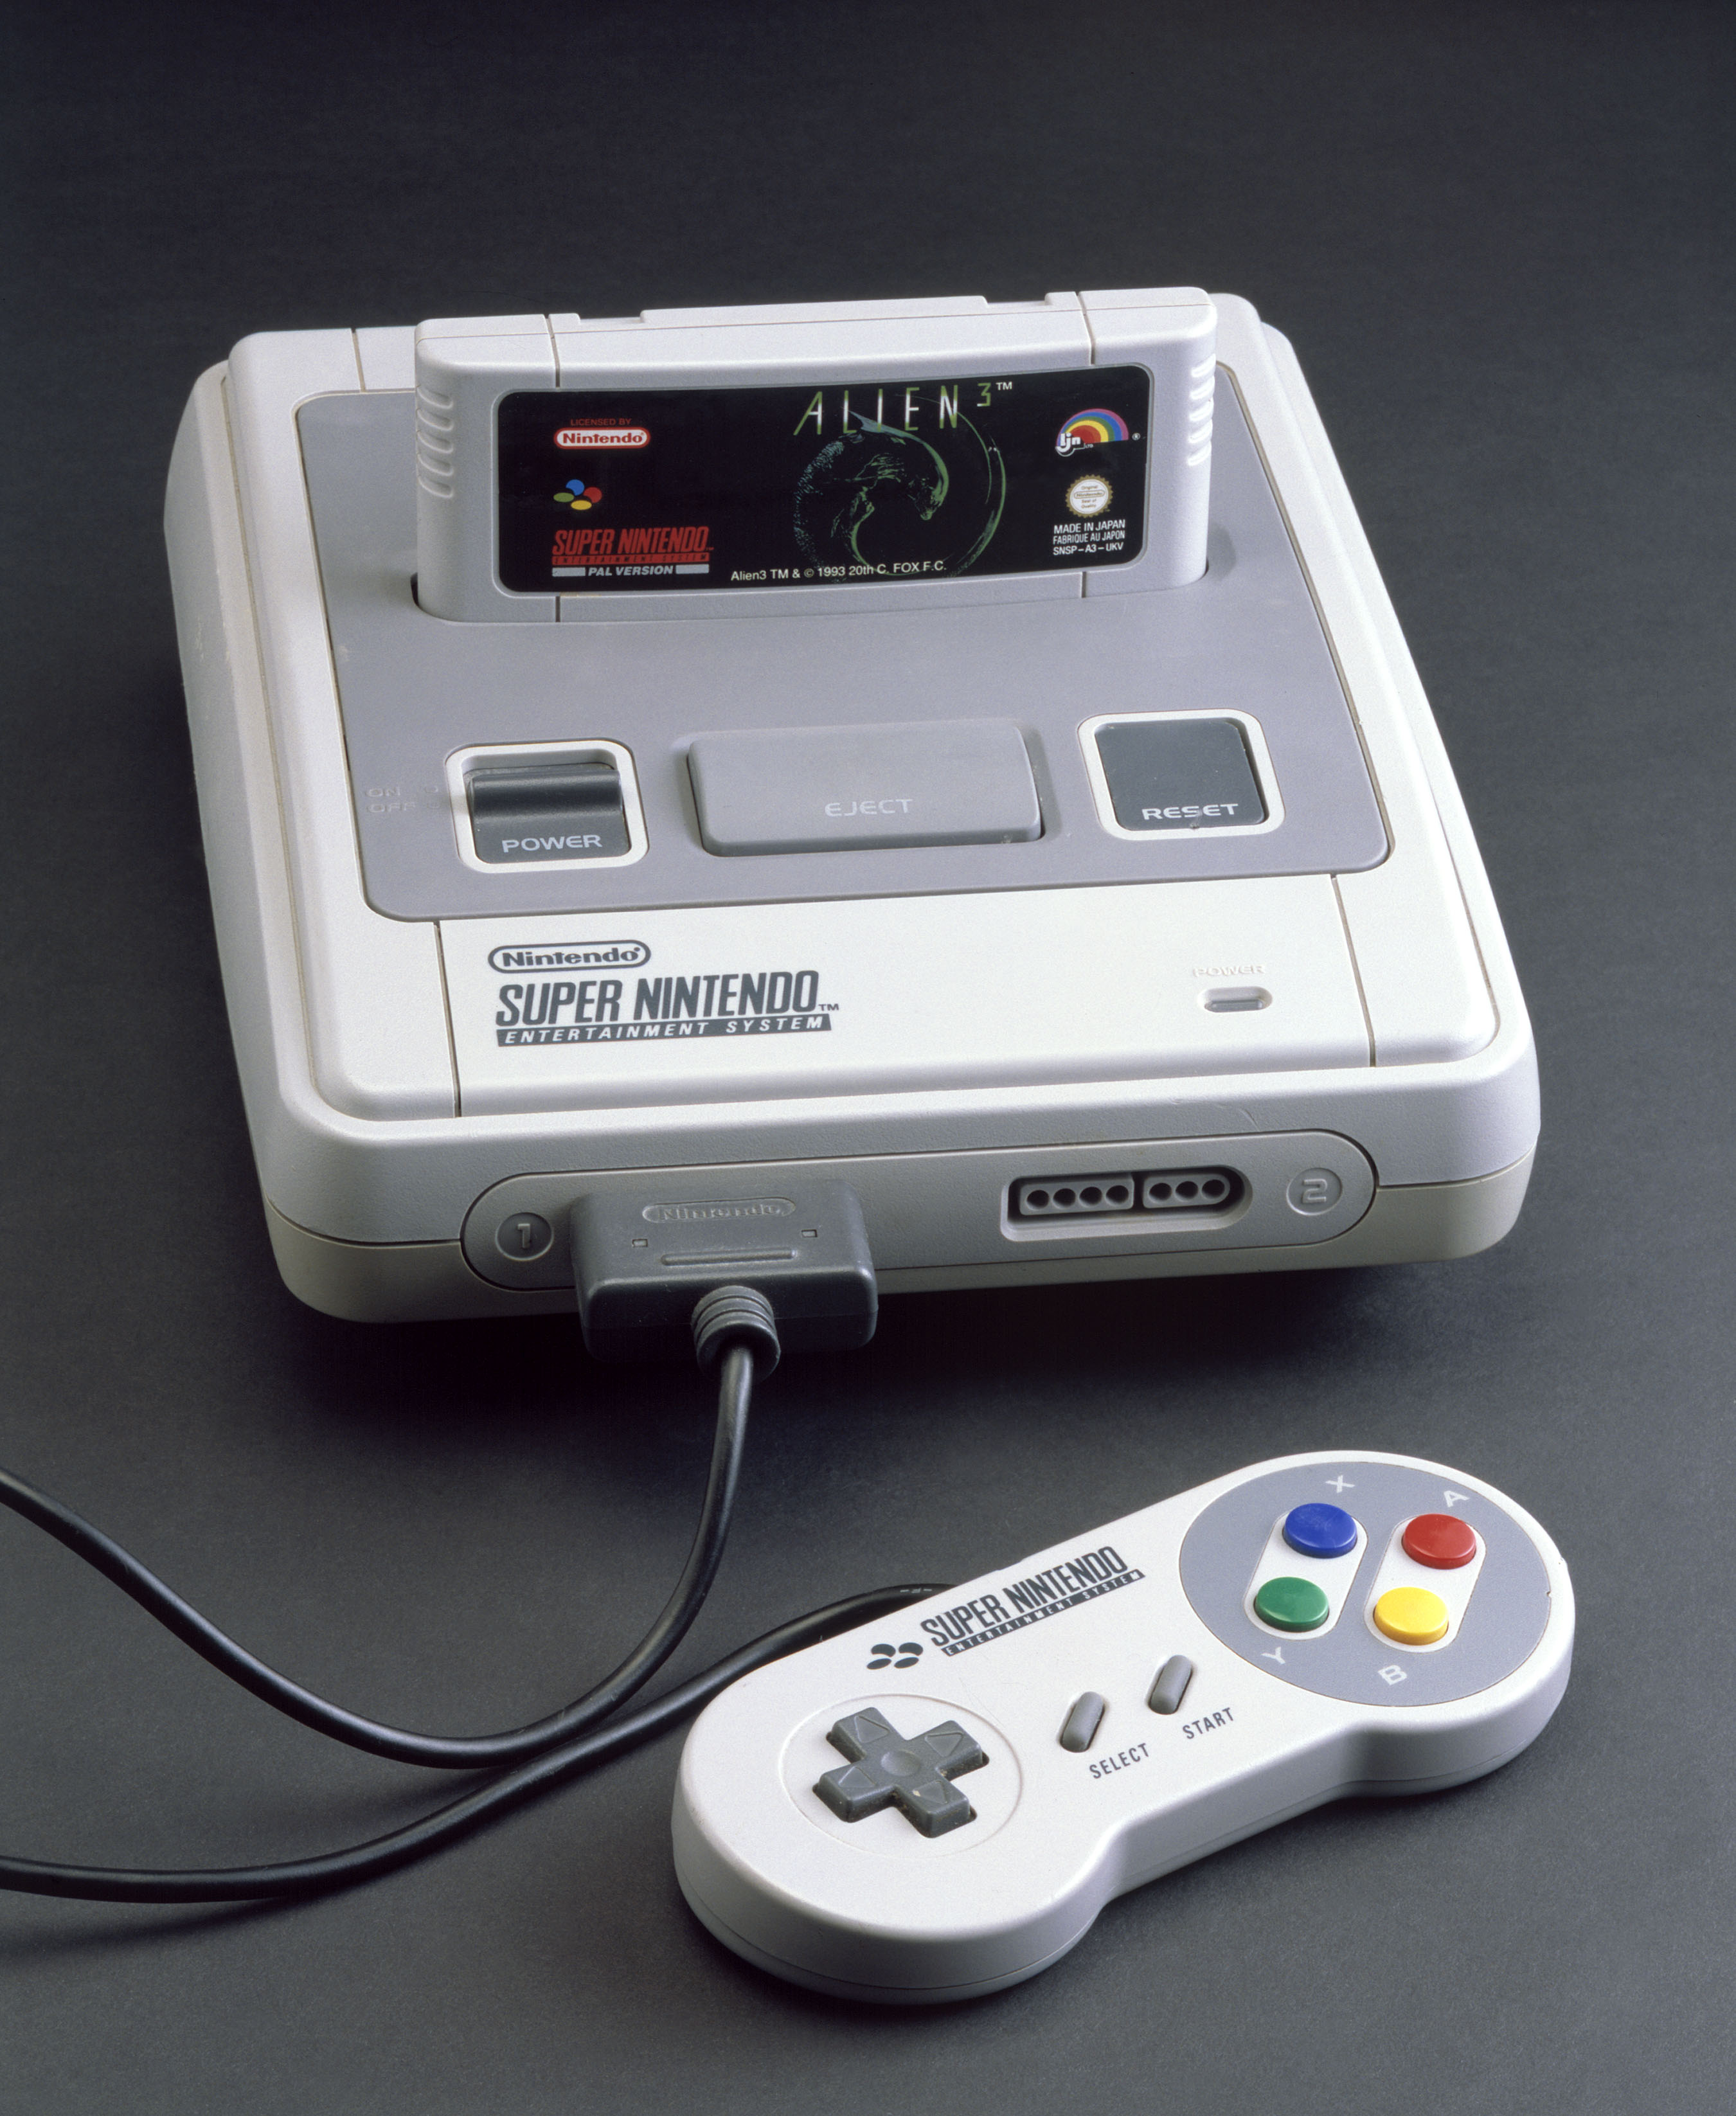 JAPAN - SEPTEMBER 04:  Super Nintendo Entertainment System, 1992. Computer games console with 'Alien 3' game cartridge and one hand-held controller made by Nintendo, Japan.  (Photo by SSPL/Getty Images)